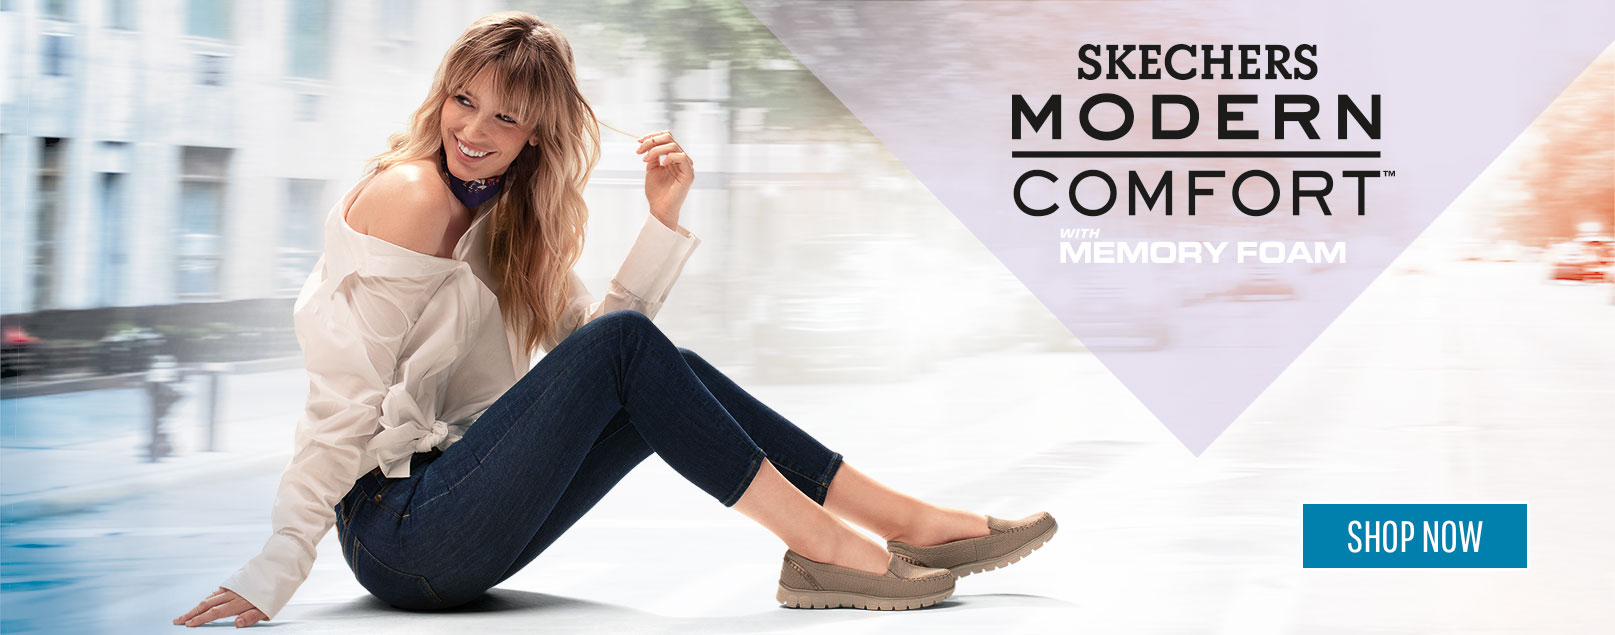 View all women's Skechers casual shoes including, Bobs for Dogs, Relaxed Fit and Active shoes.